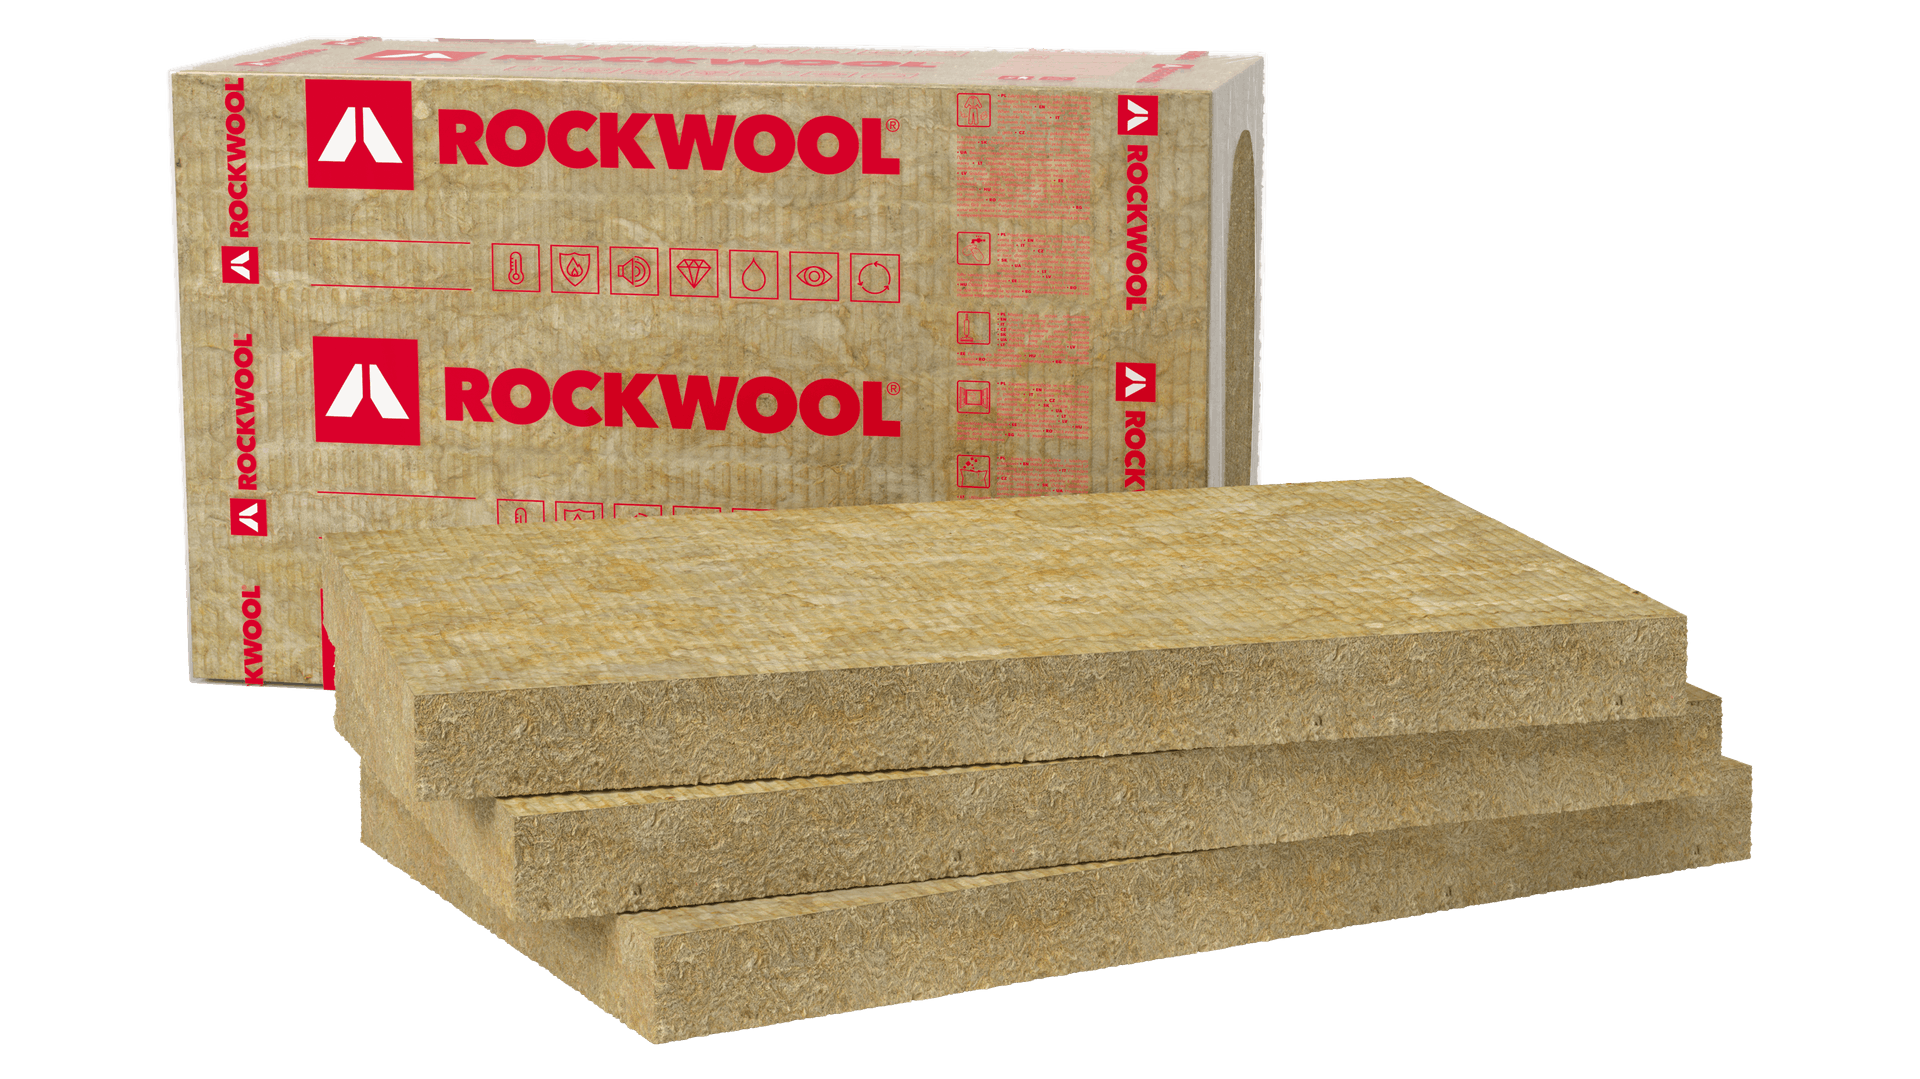 package, slabs, ewi, facade, products, external wall insulation, ventilated facade, ventirock